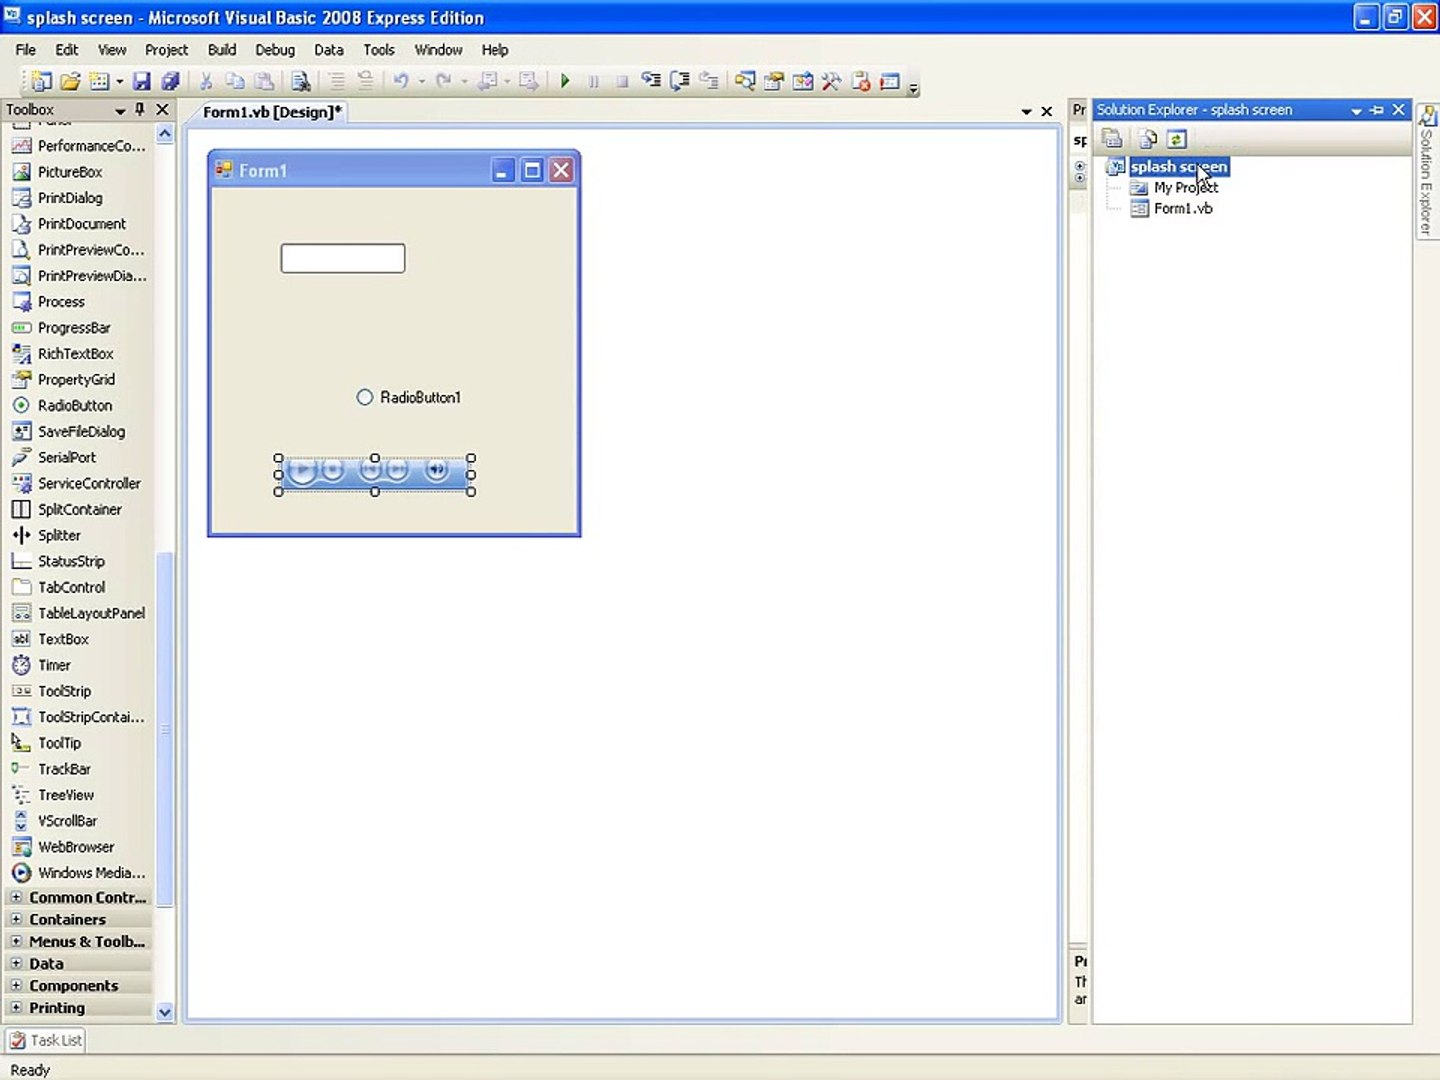 VB NET Tutorial 14 - Splash Screen (Visual Basic 2008/2010)